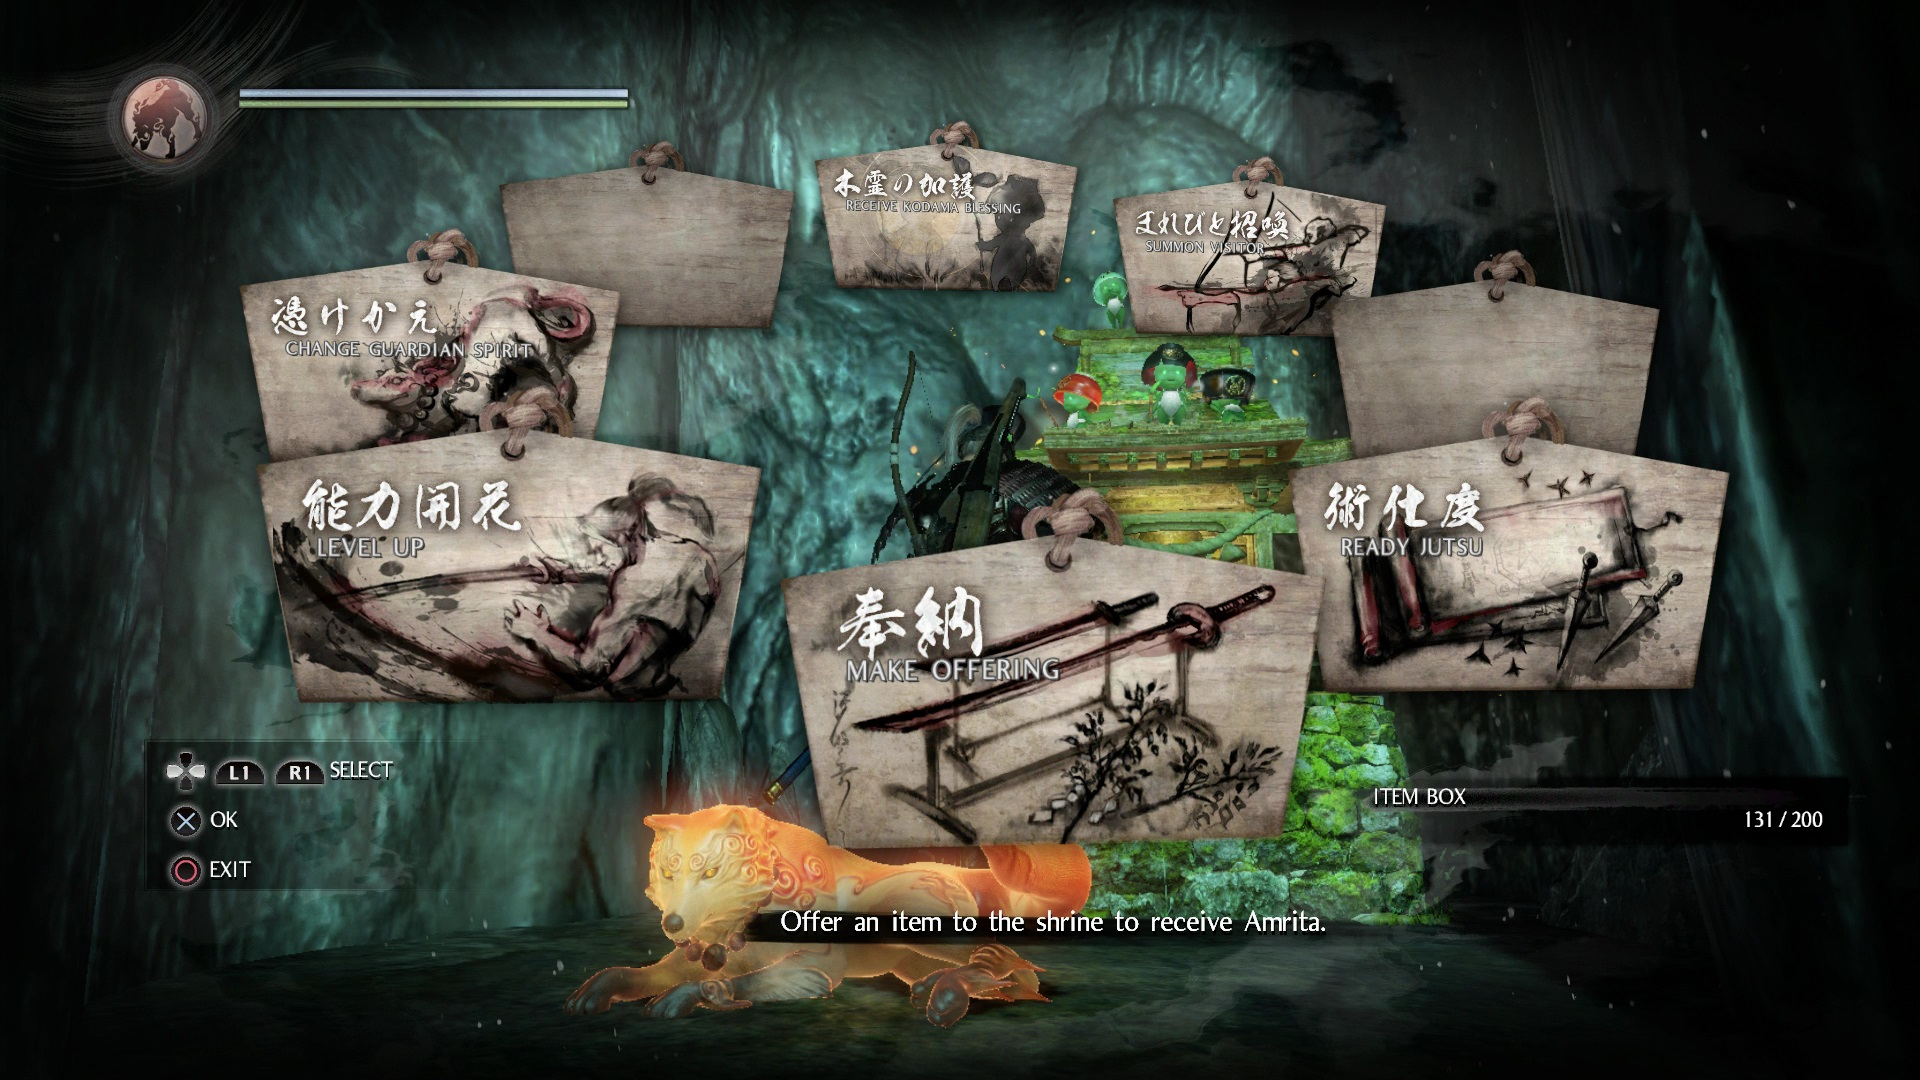 Nioh - Shrine Features Explained   LevelCamp - Guides, News, and Fun